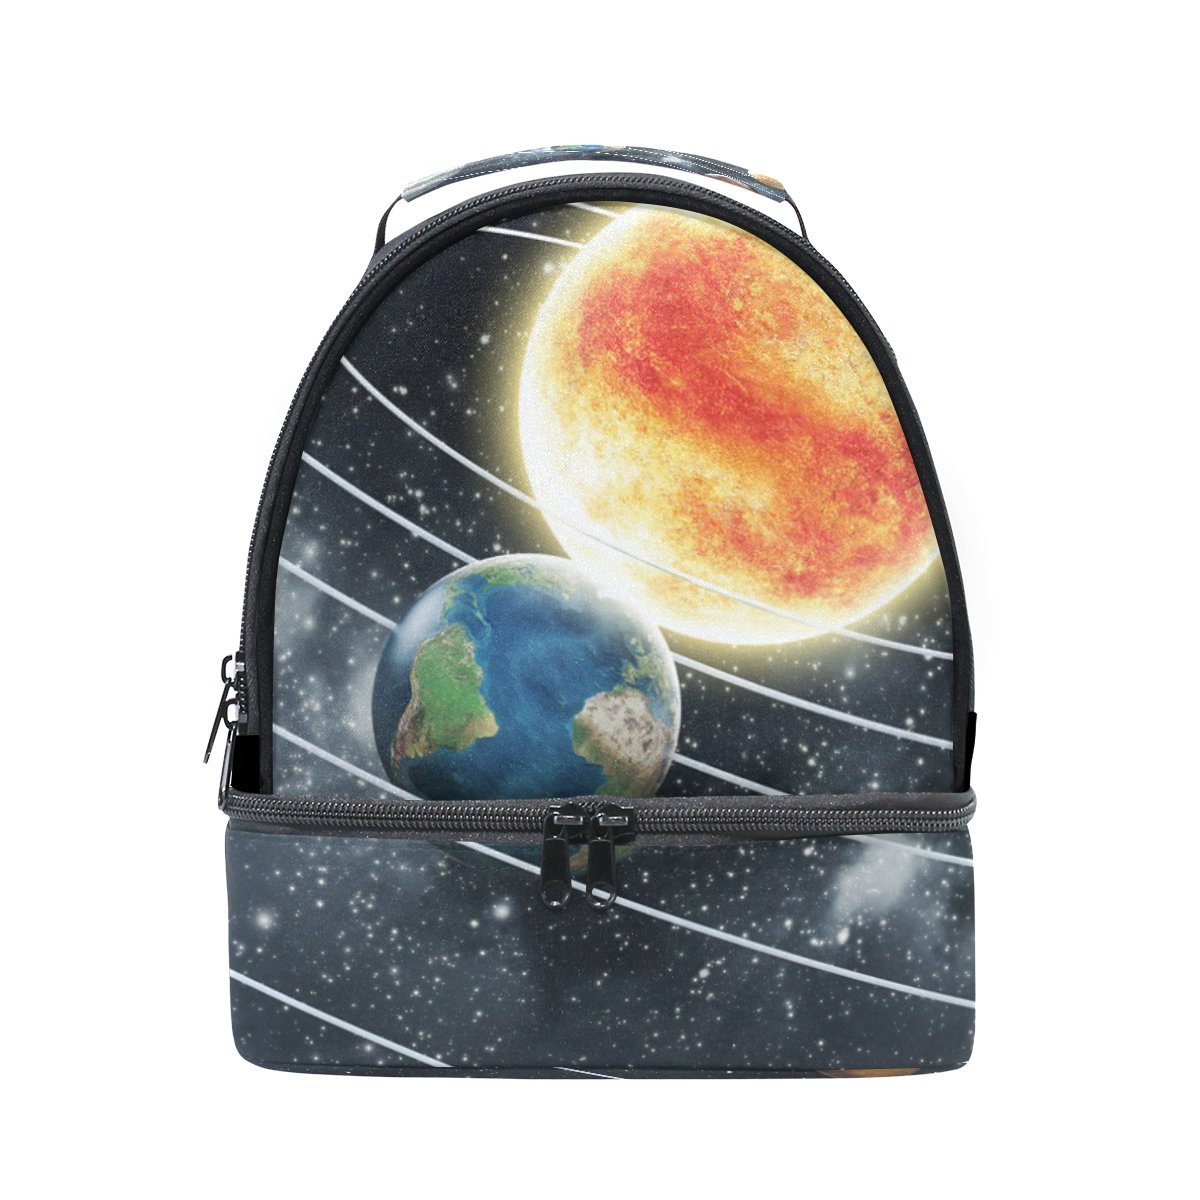 ALIREA Solar System Lunch Bag Dual Deck Insulated Lunch Cooler Tote Bag Adjustable Strap Handle for Women Men Teens Boys Girls